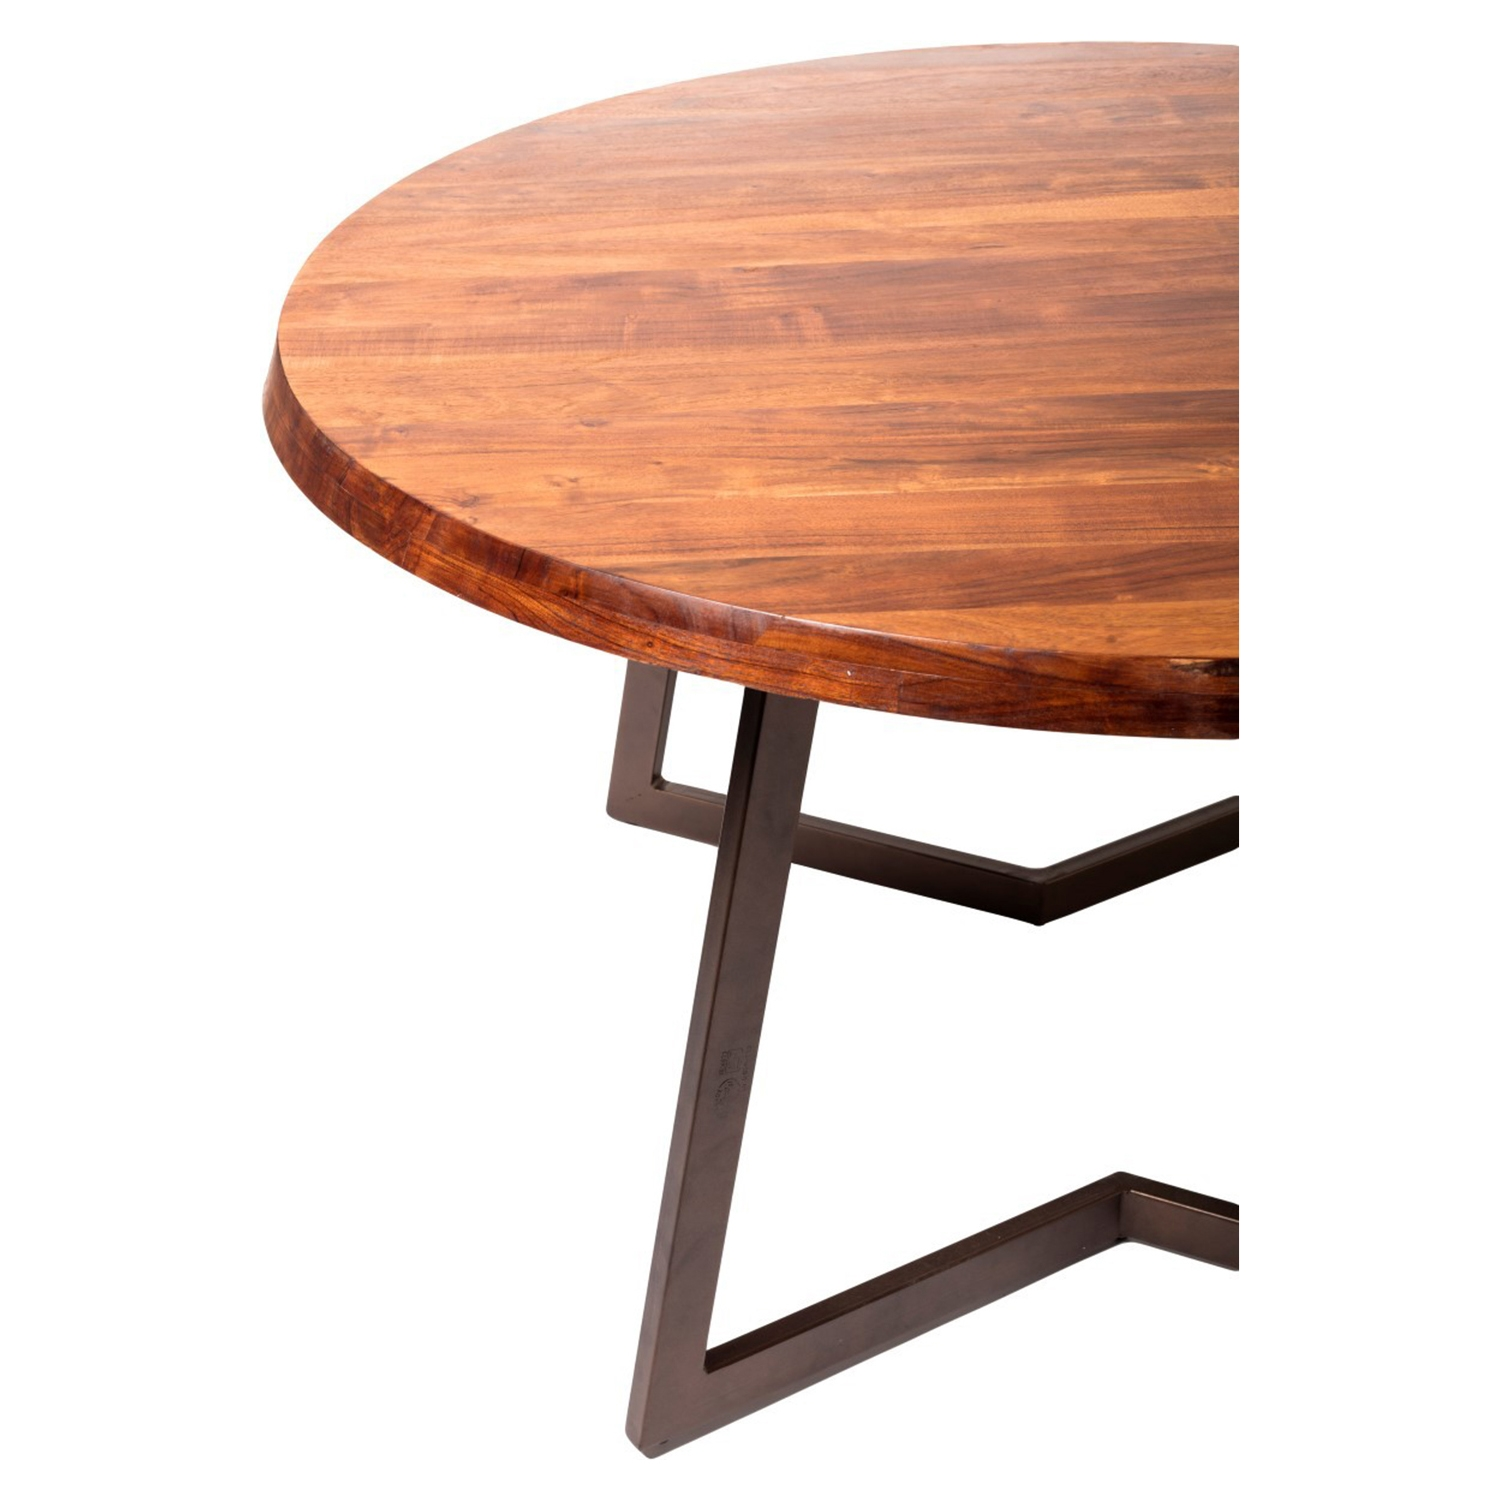 Belem Large Round Dining Table - MOES-SR-1034-20